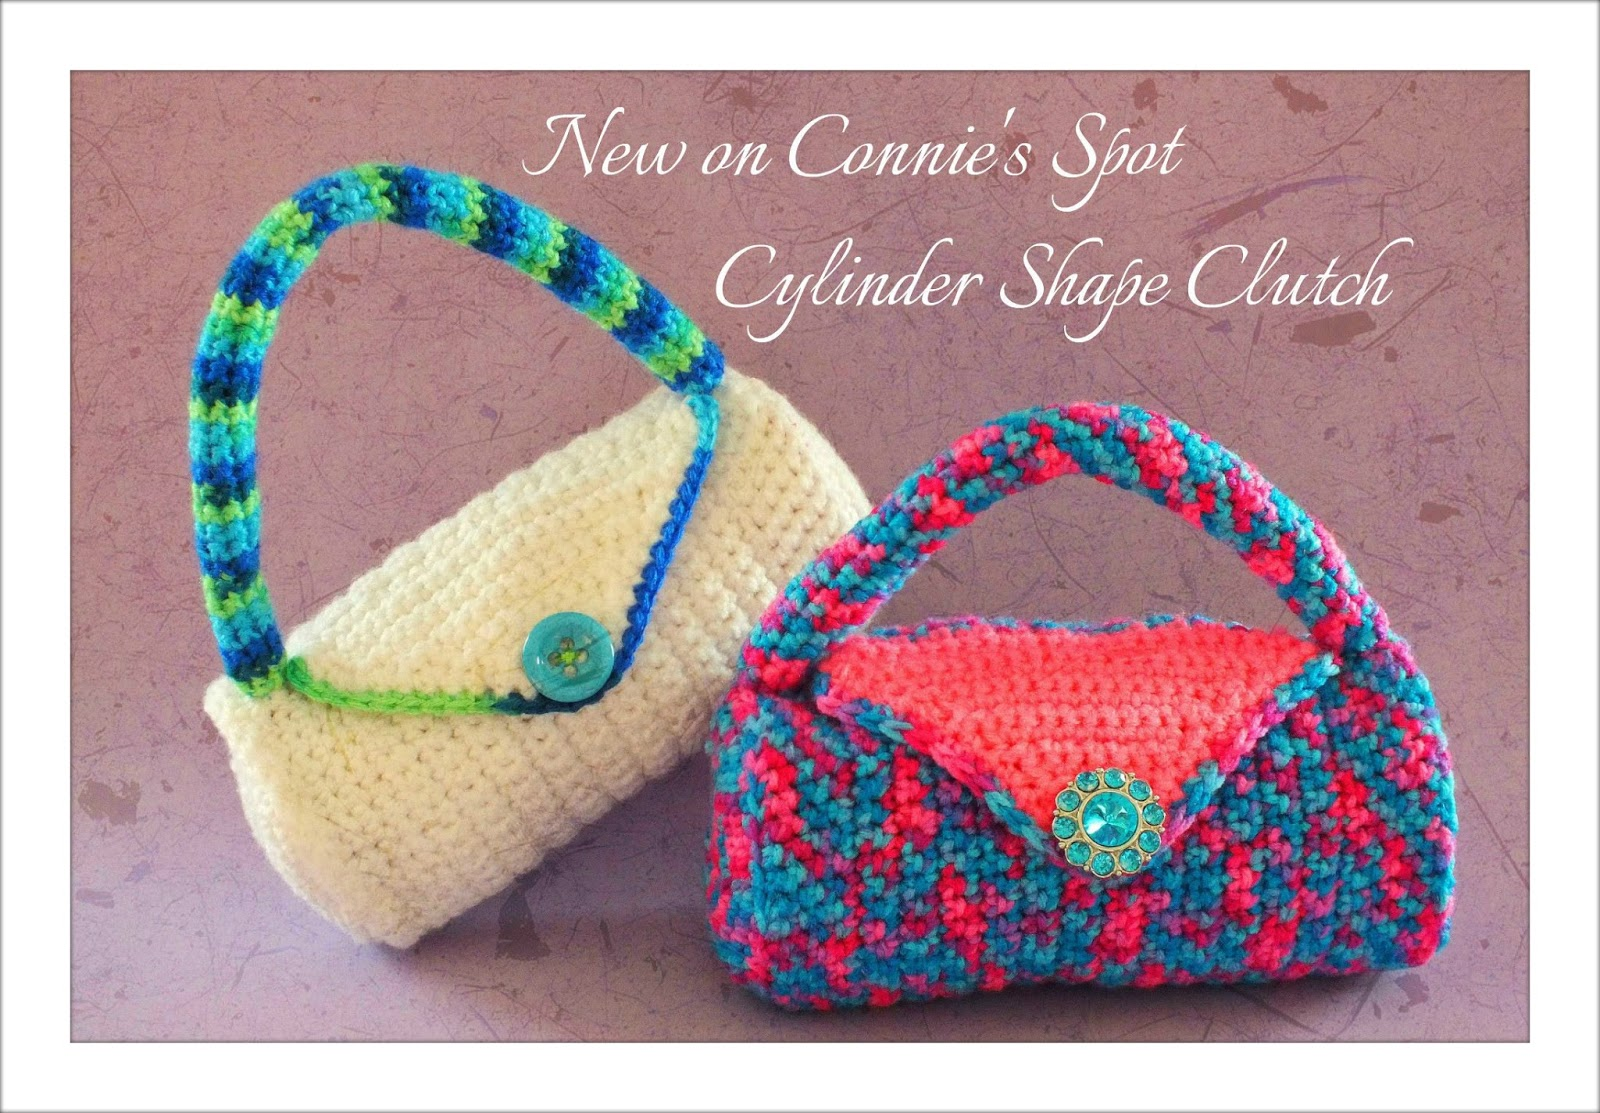 Crochet Clutch Pattern Free : ... Crocheting, Crafting, Creating!: Free Cylinder Clutch Bag Pattern